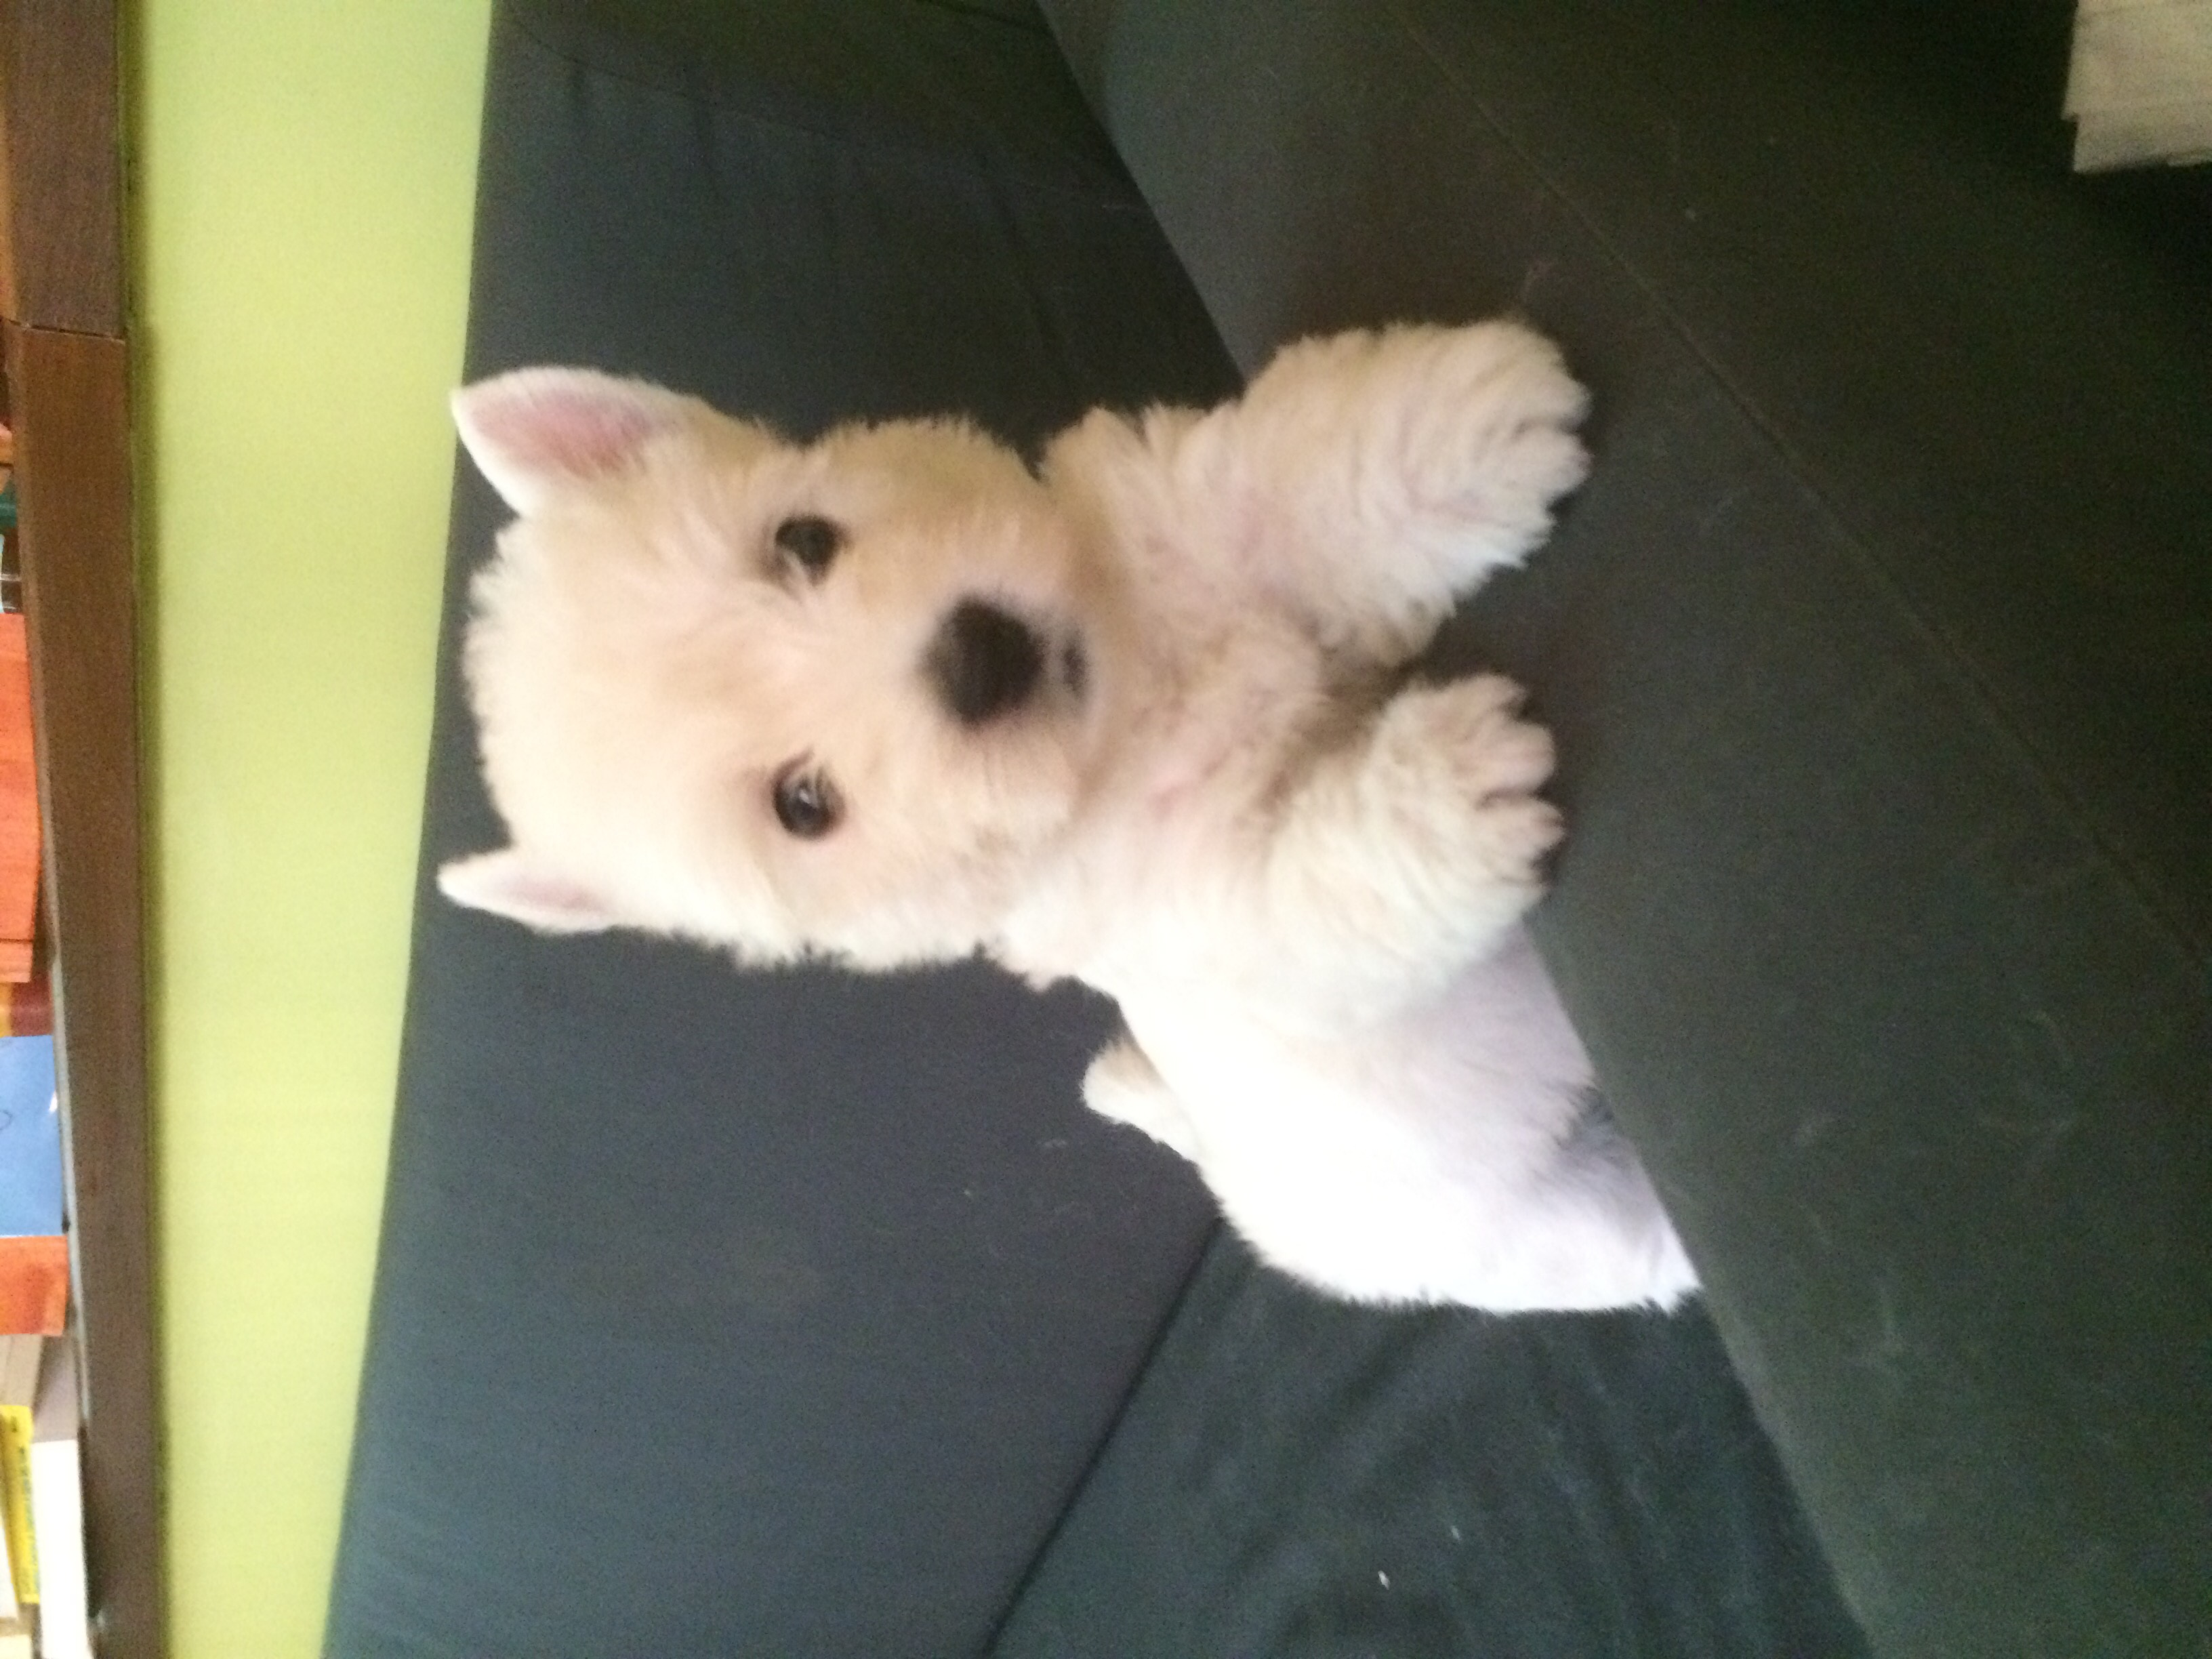 Cuccioli-West-highland-white-terrier""